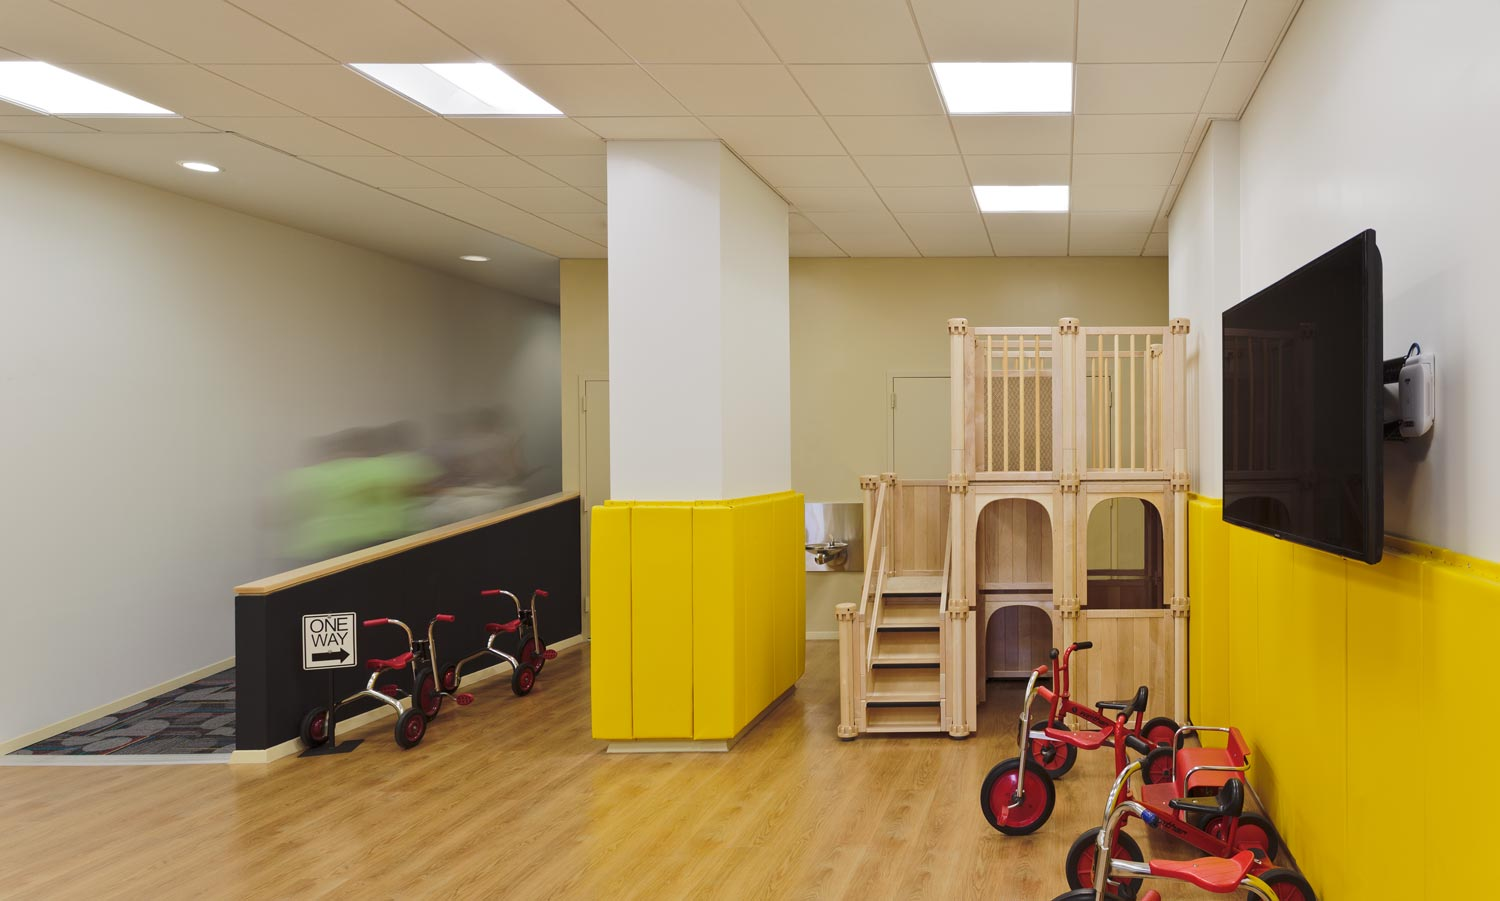 The preschool is equipped with a gymnasium, a multi-purpose room, and outdoor space.